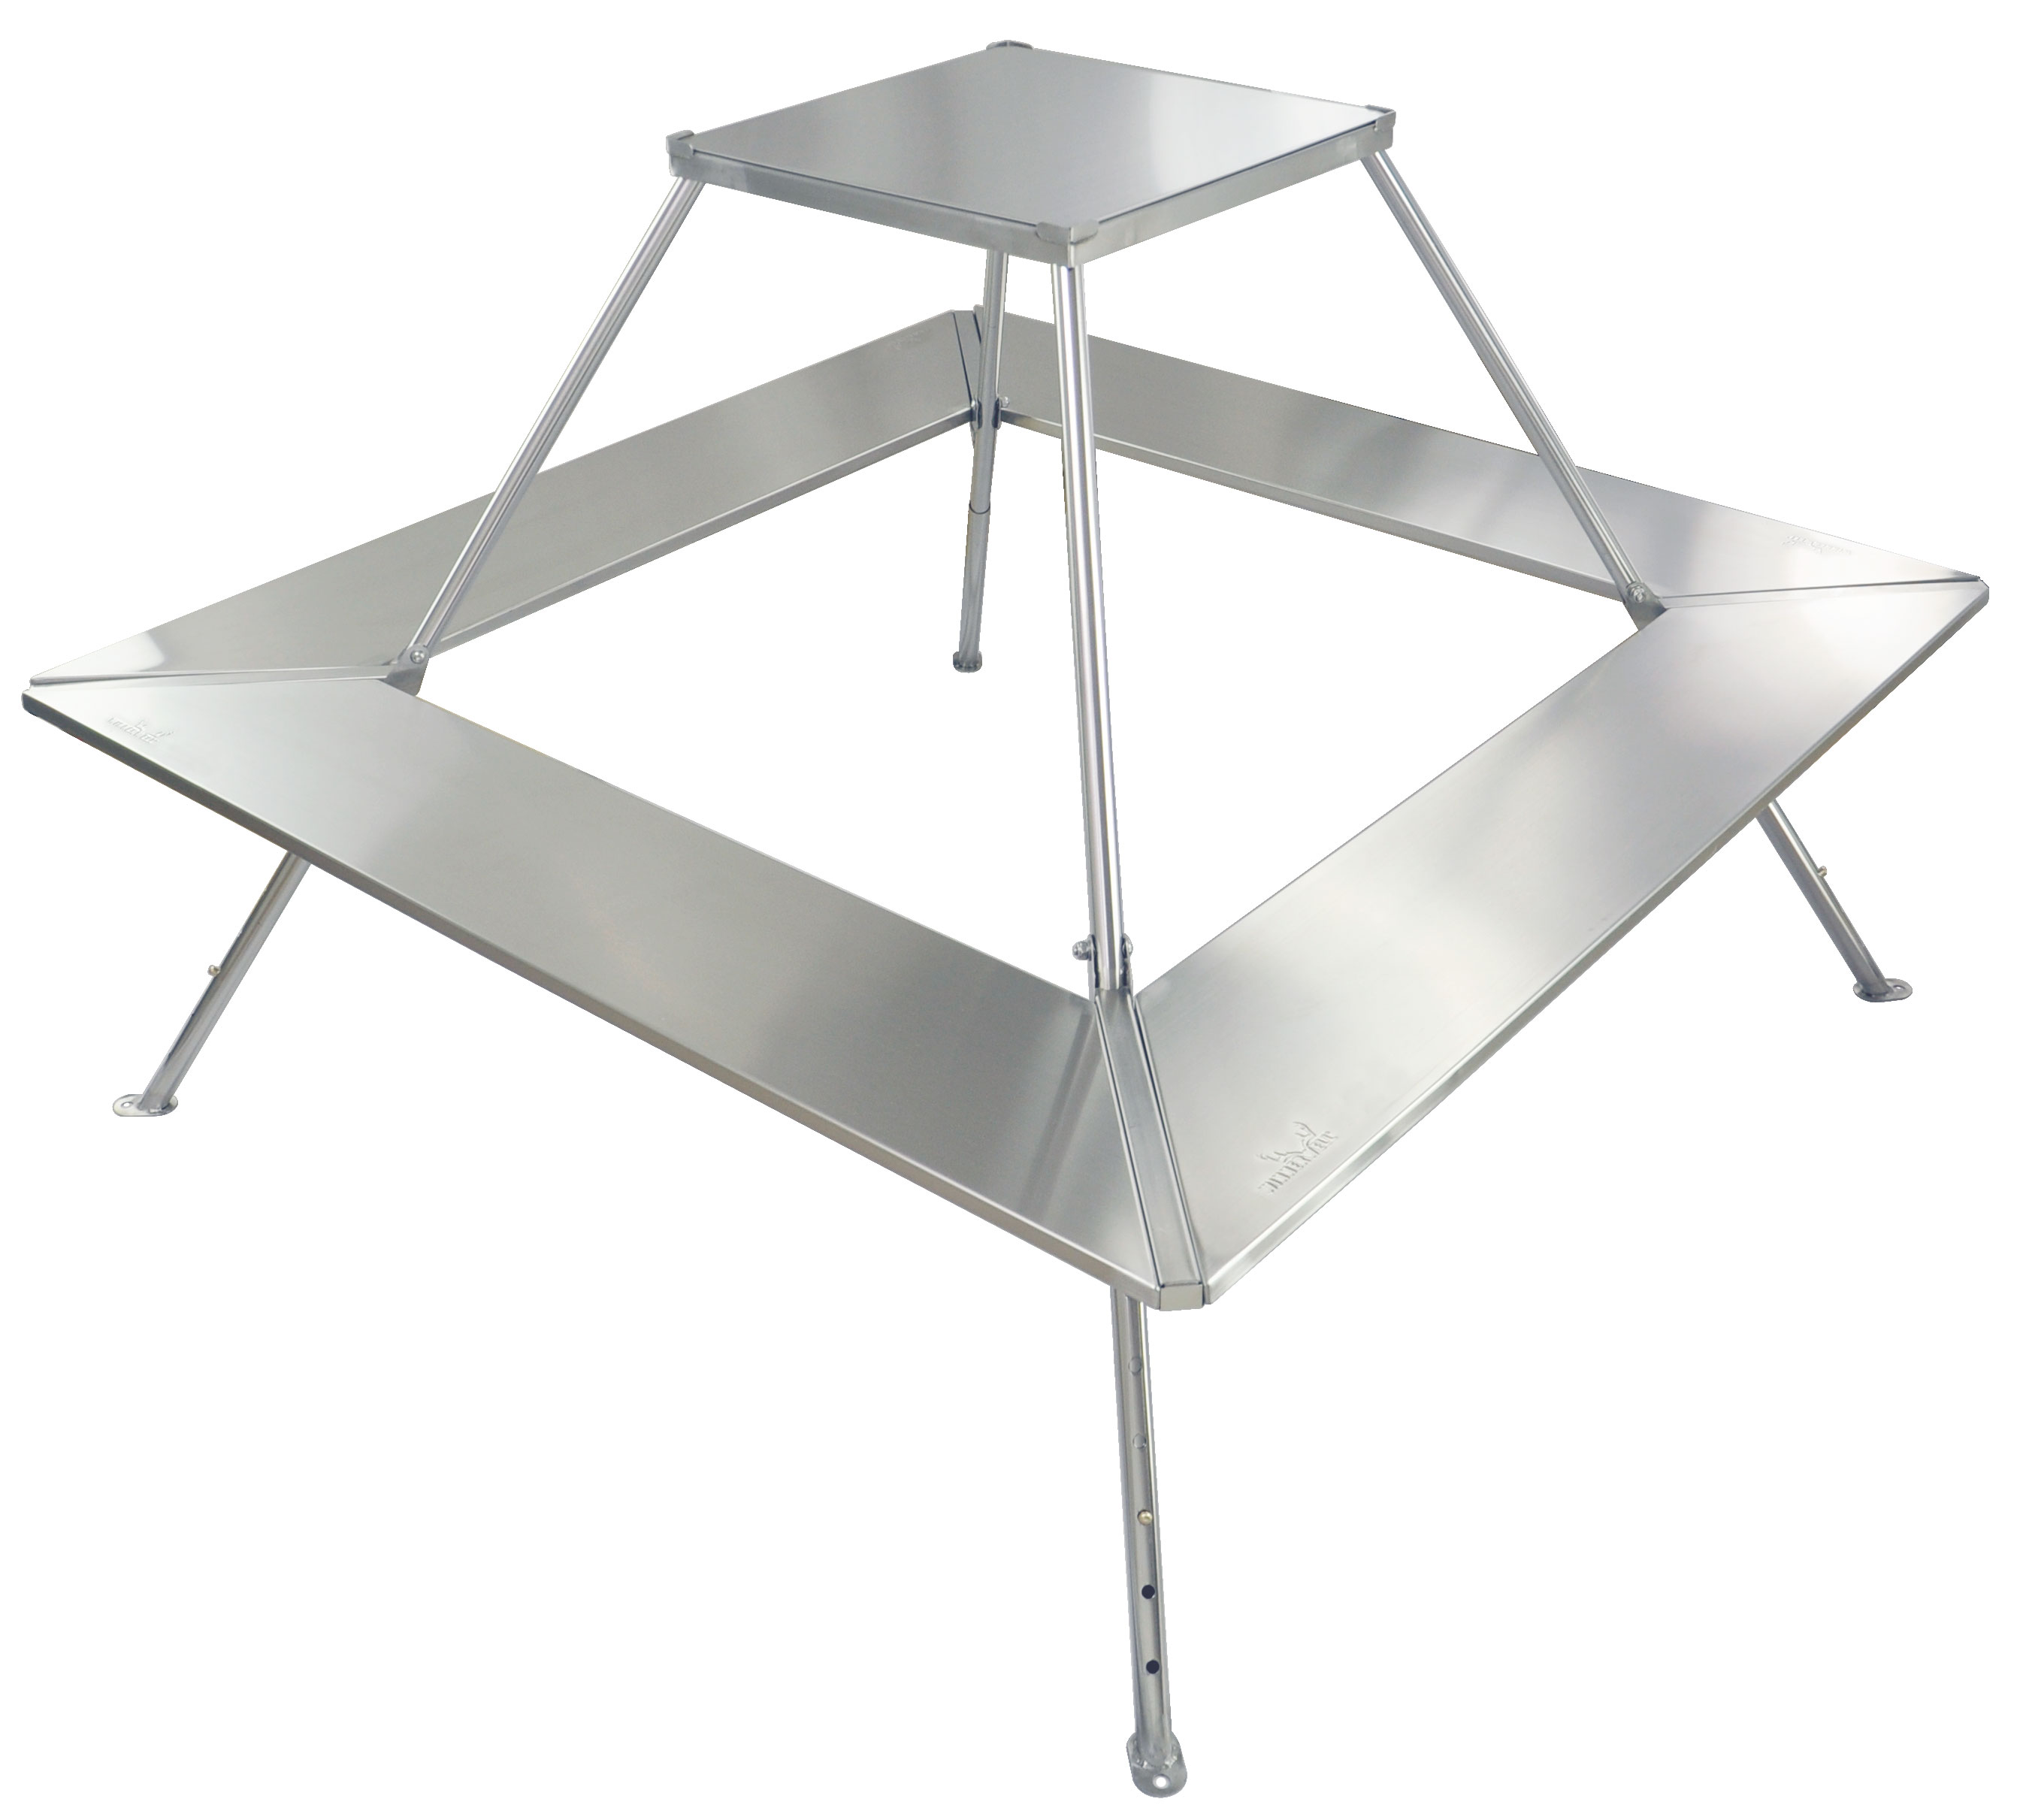 Fire Guard Stove Table SKU 910427